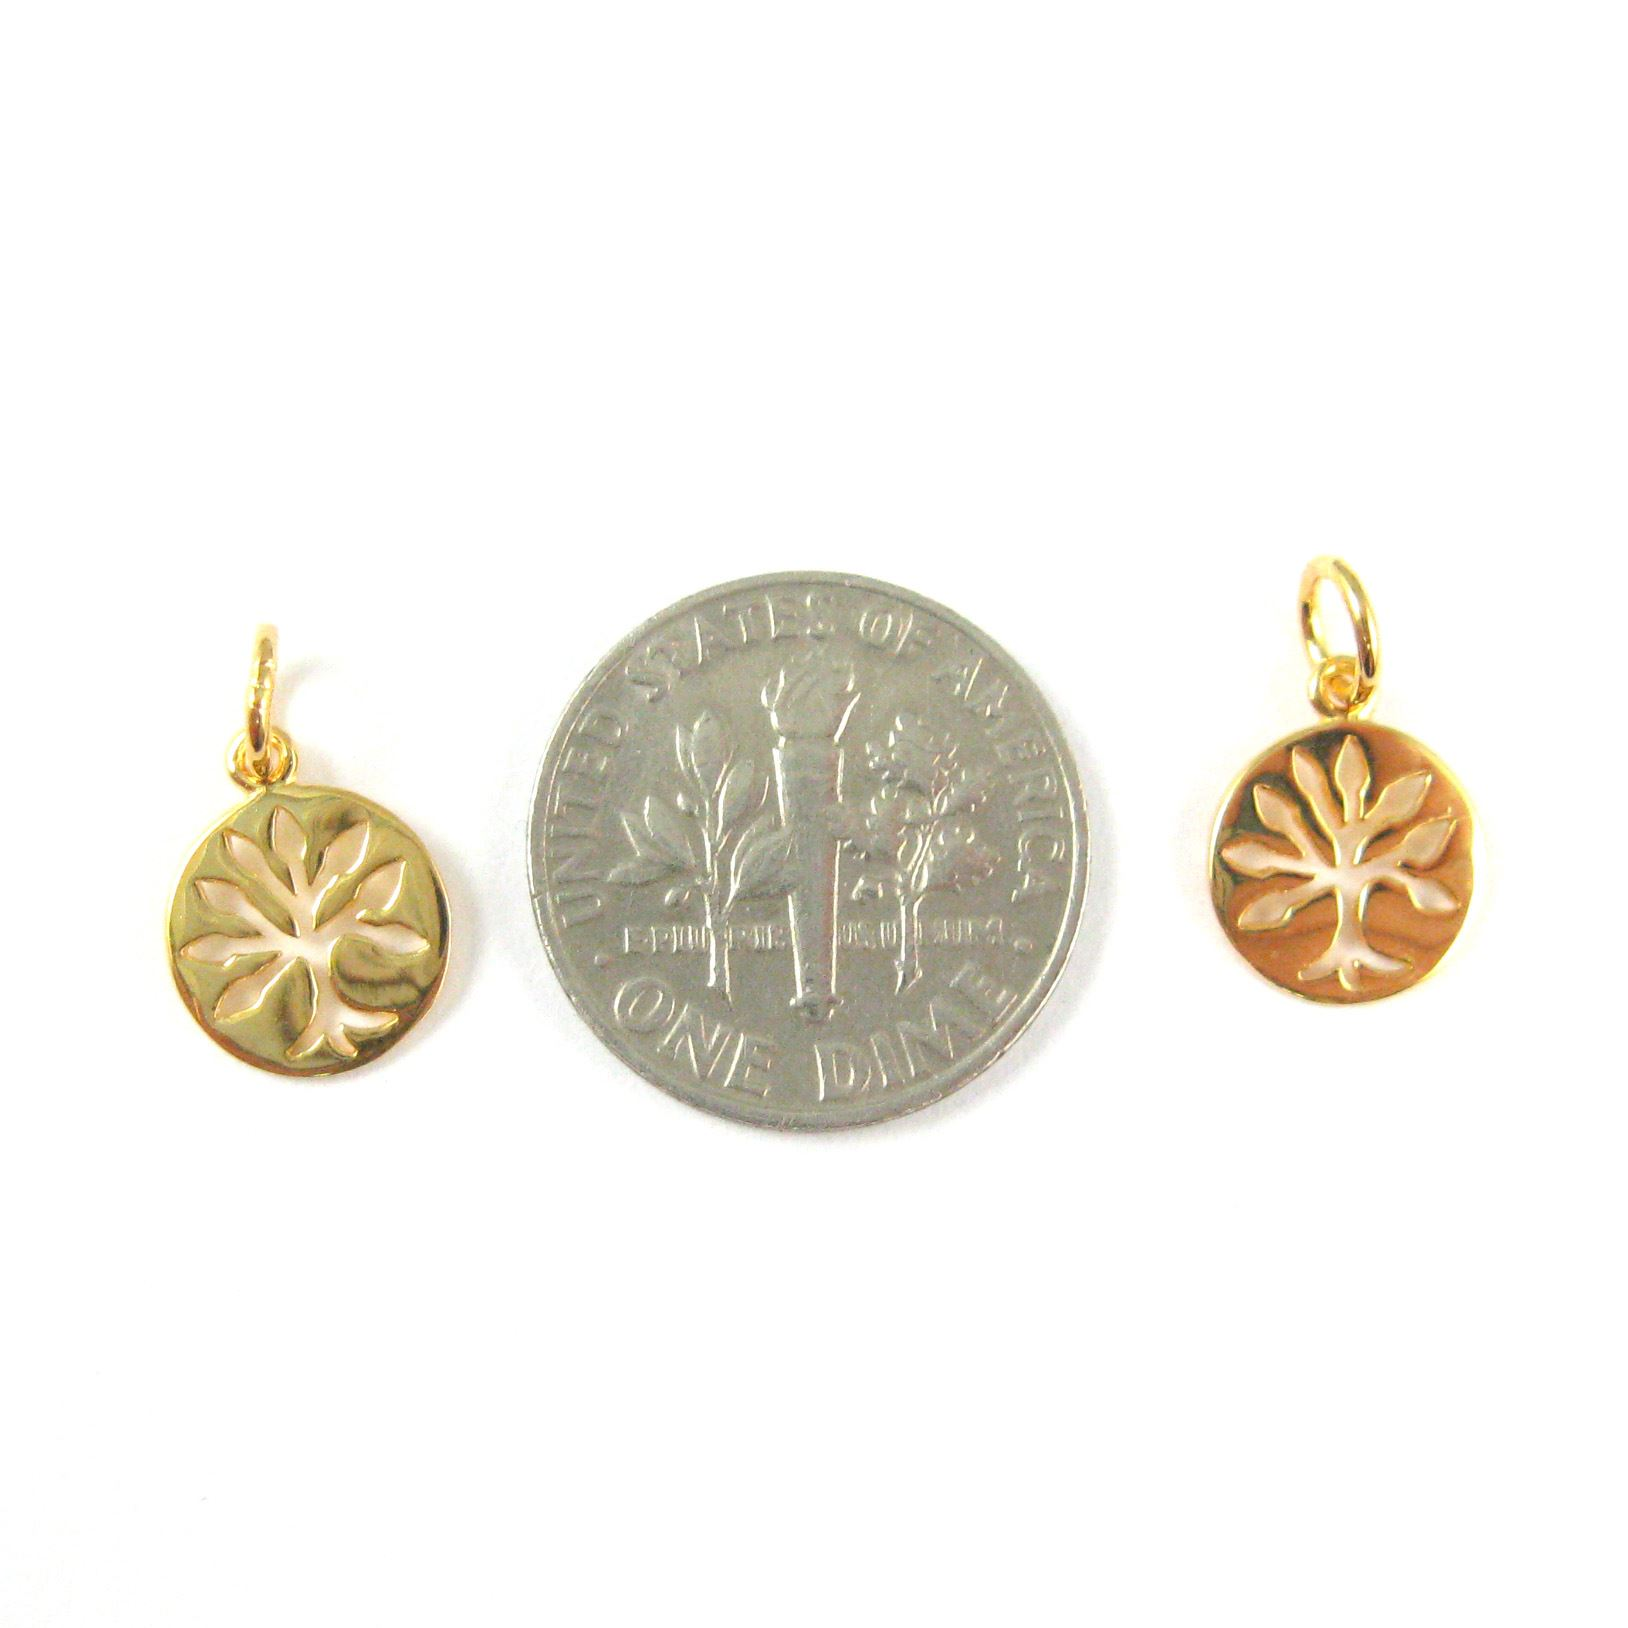 22K Gold plated 925 Sterling Silver Charm-Tree Charm - Tree of Life Coin Charm - High Polish Vermeil Tiny Tree Pendant-9mm ( 2 pcs )